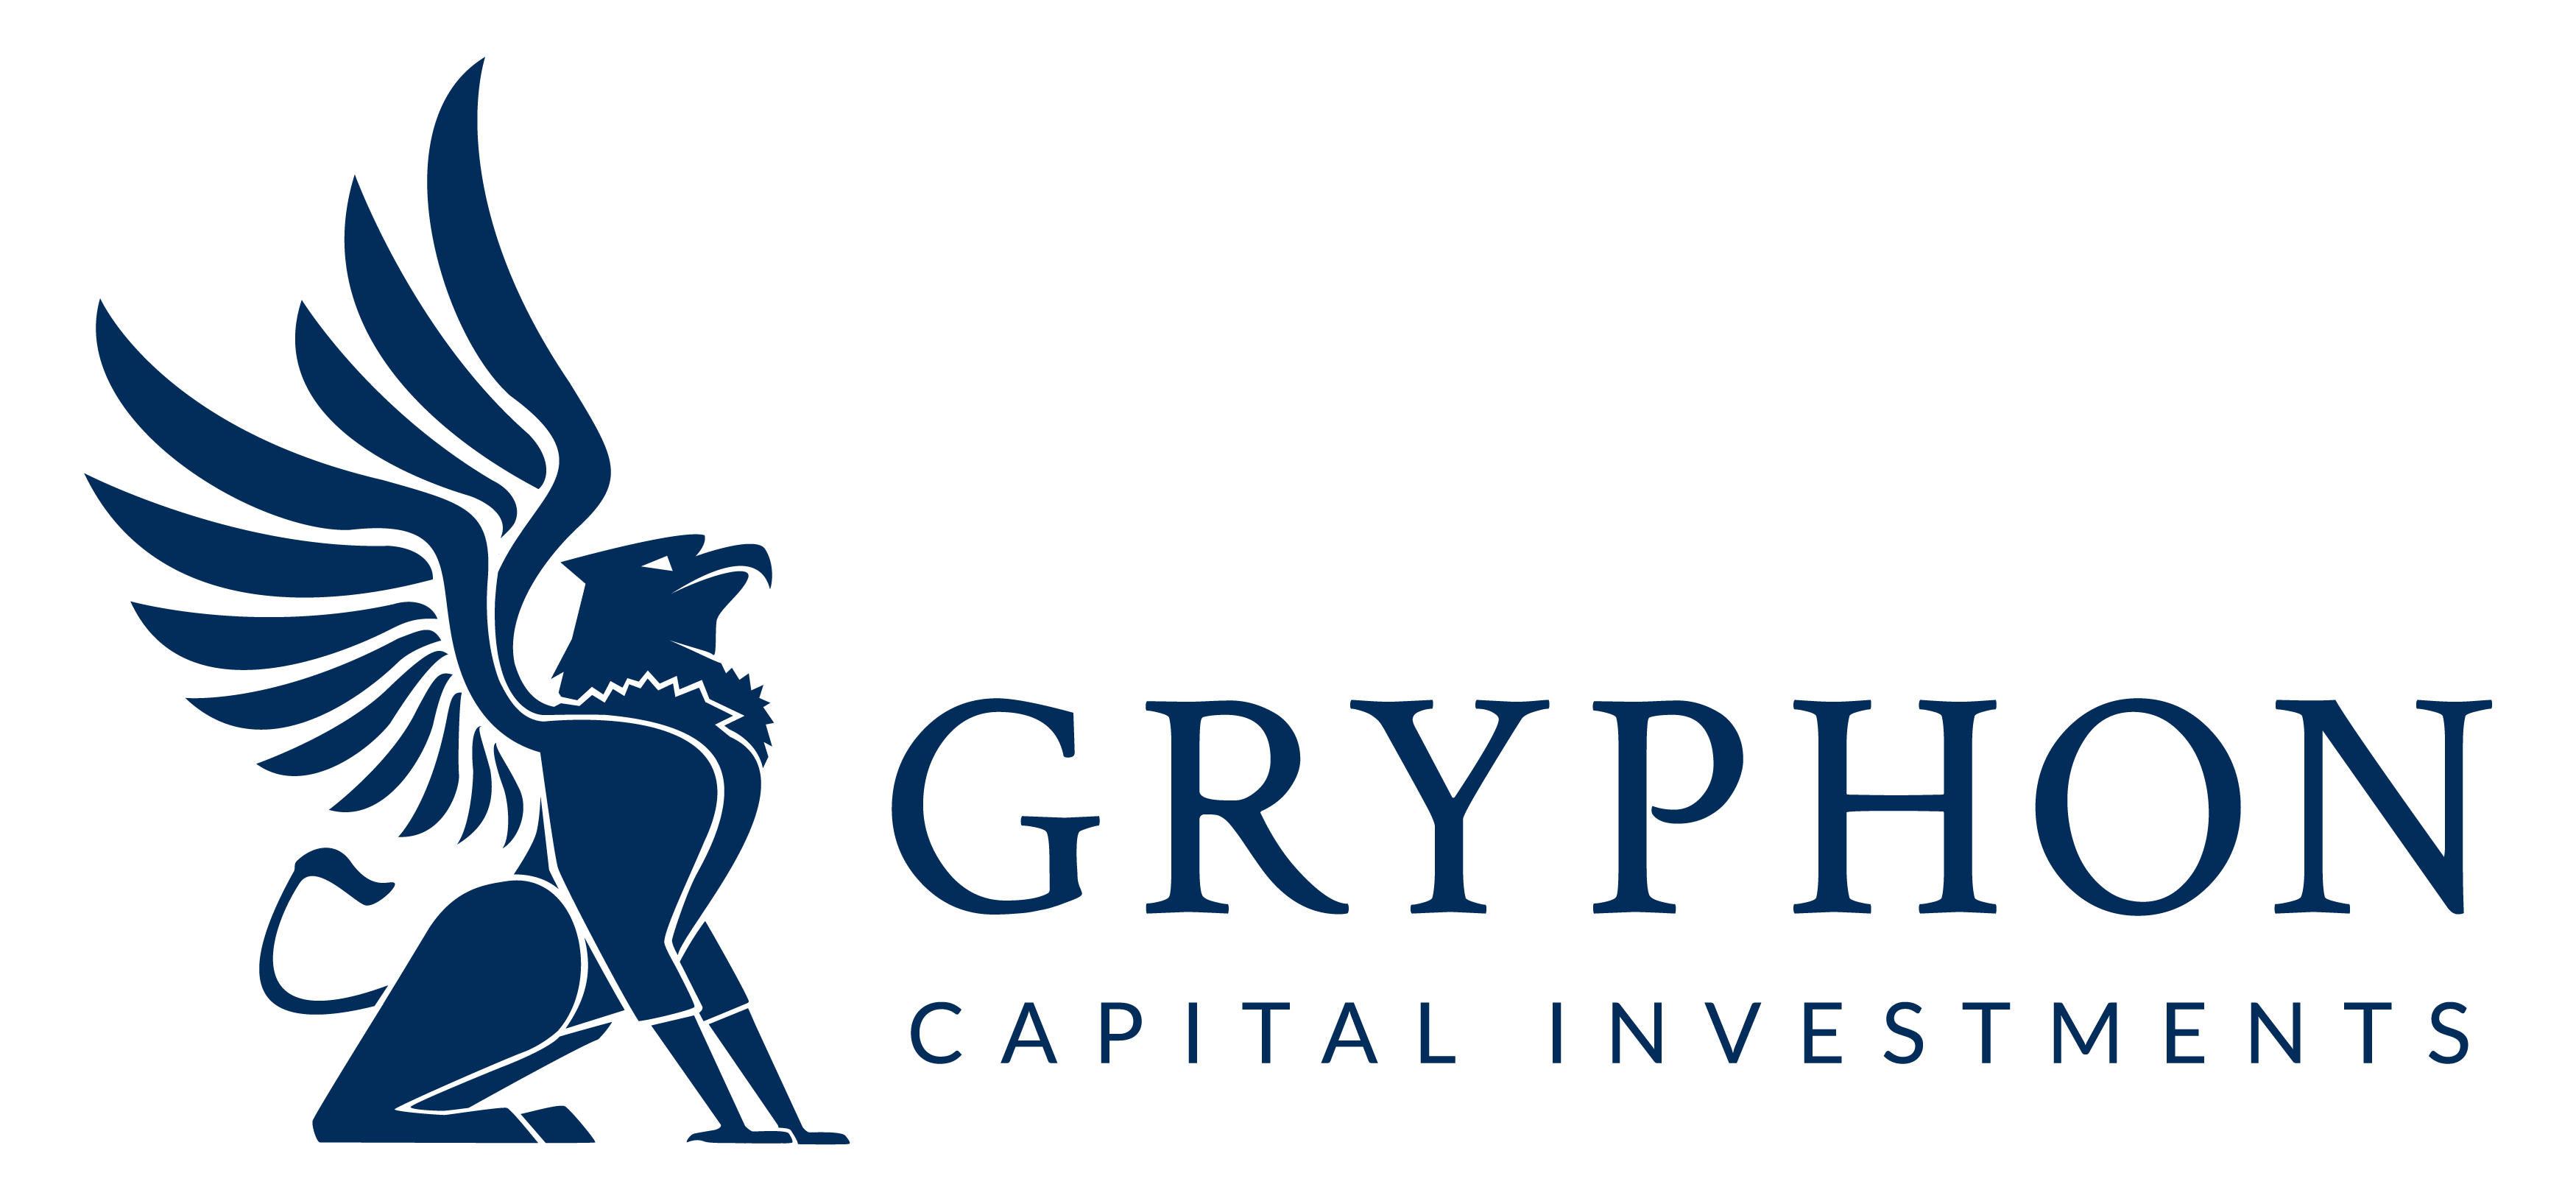 Gryphon Capital Investments